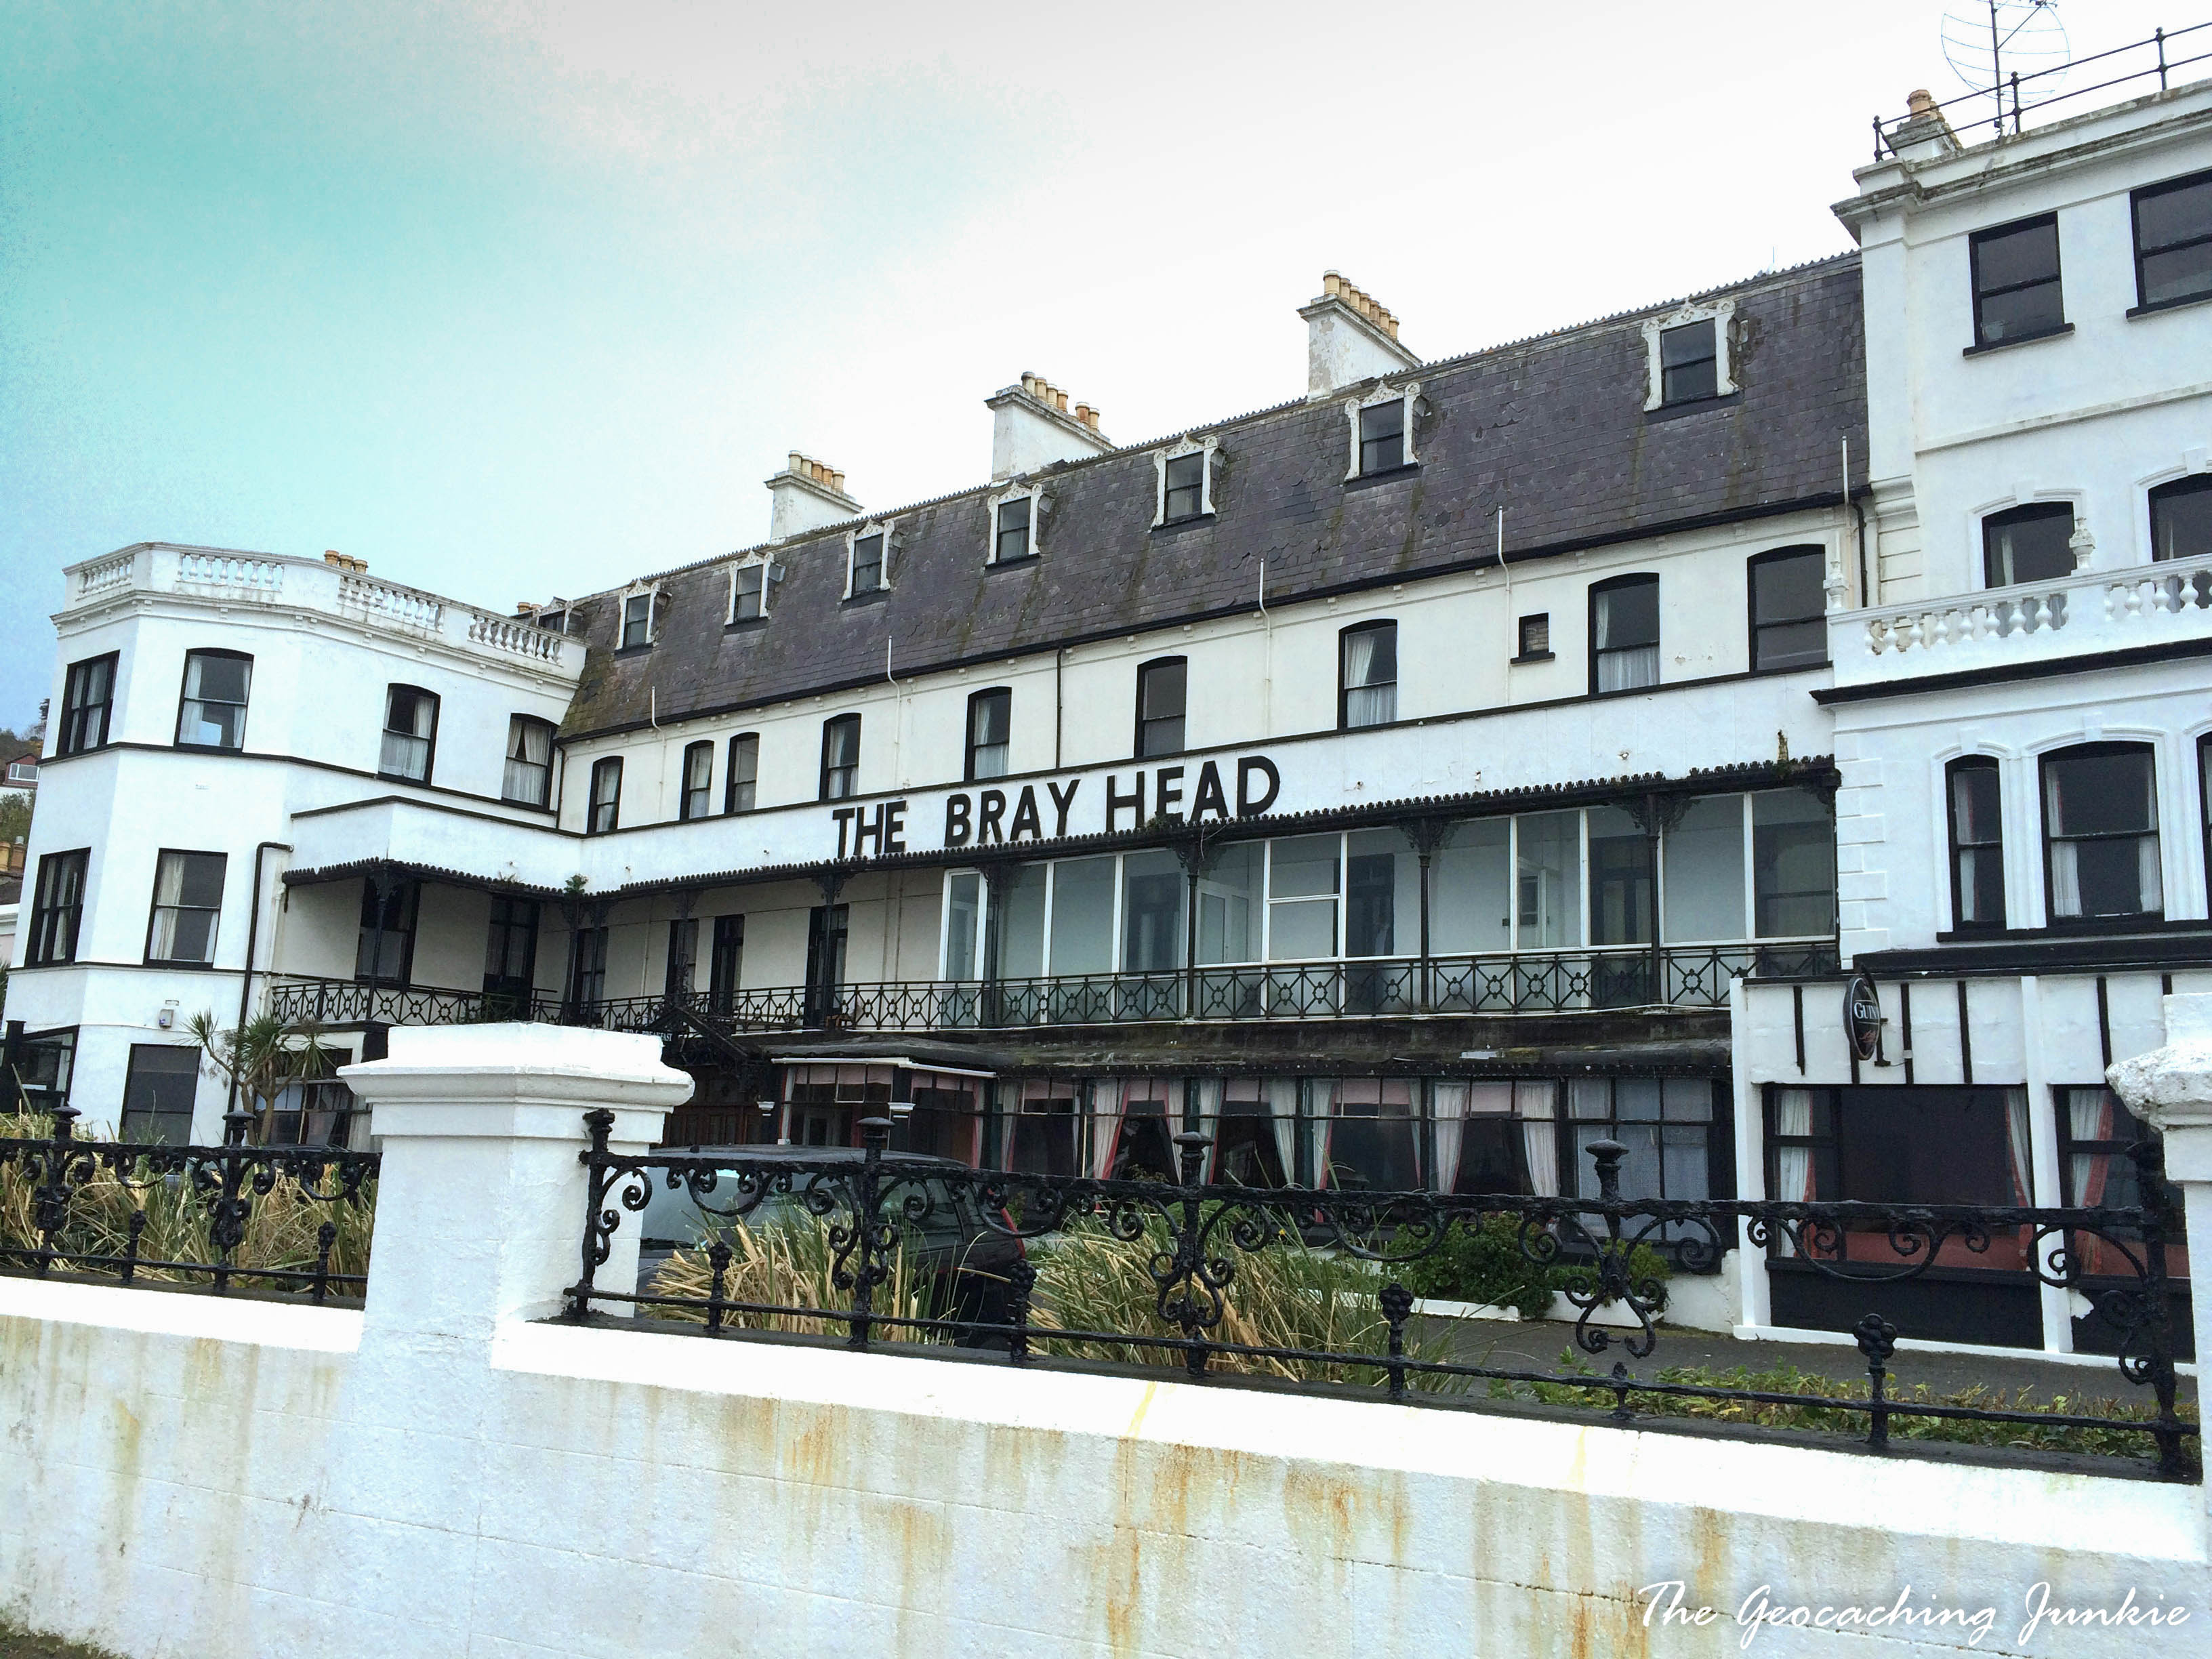 bray head hotel the commitments-099.JPG